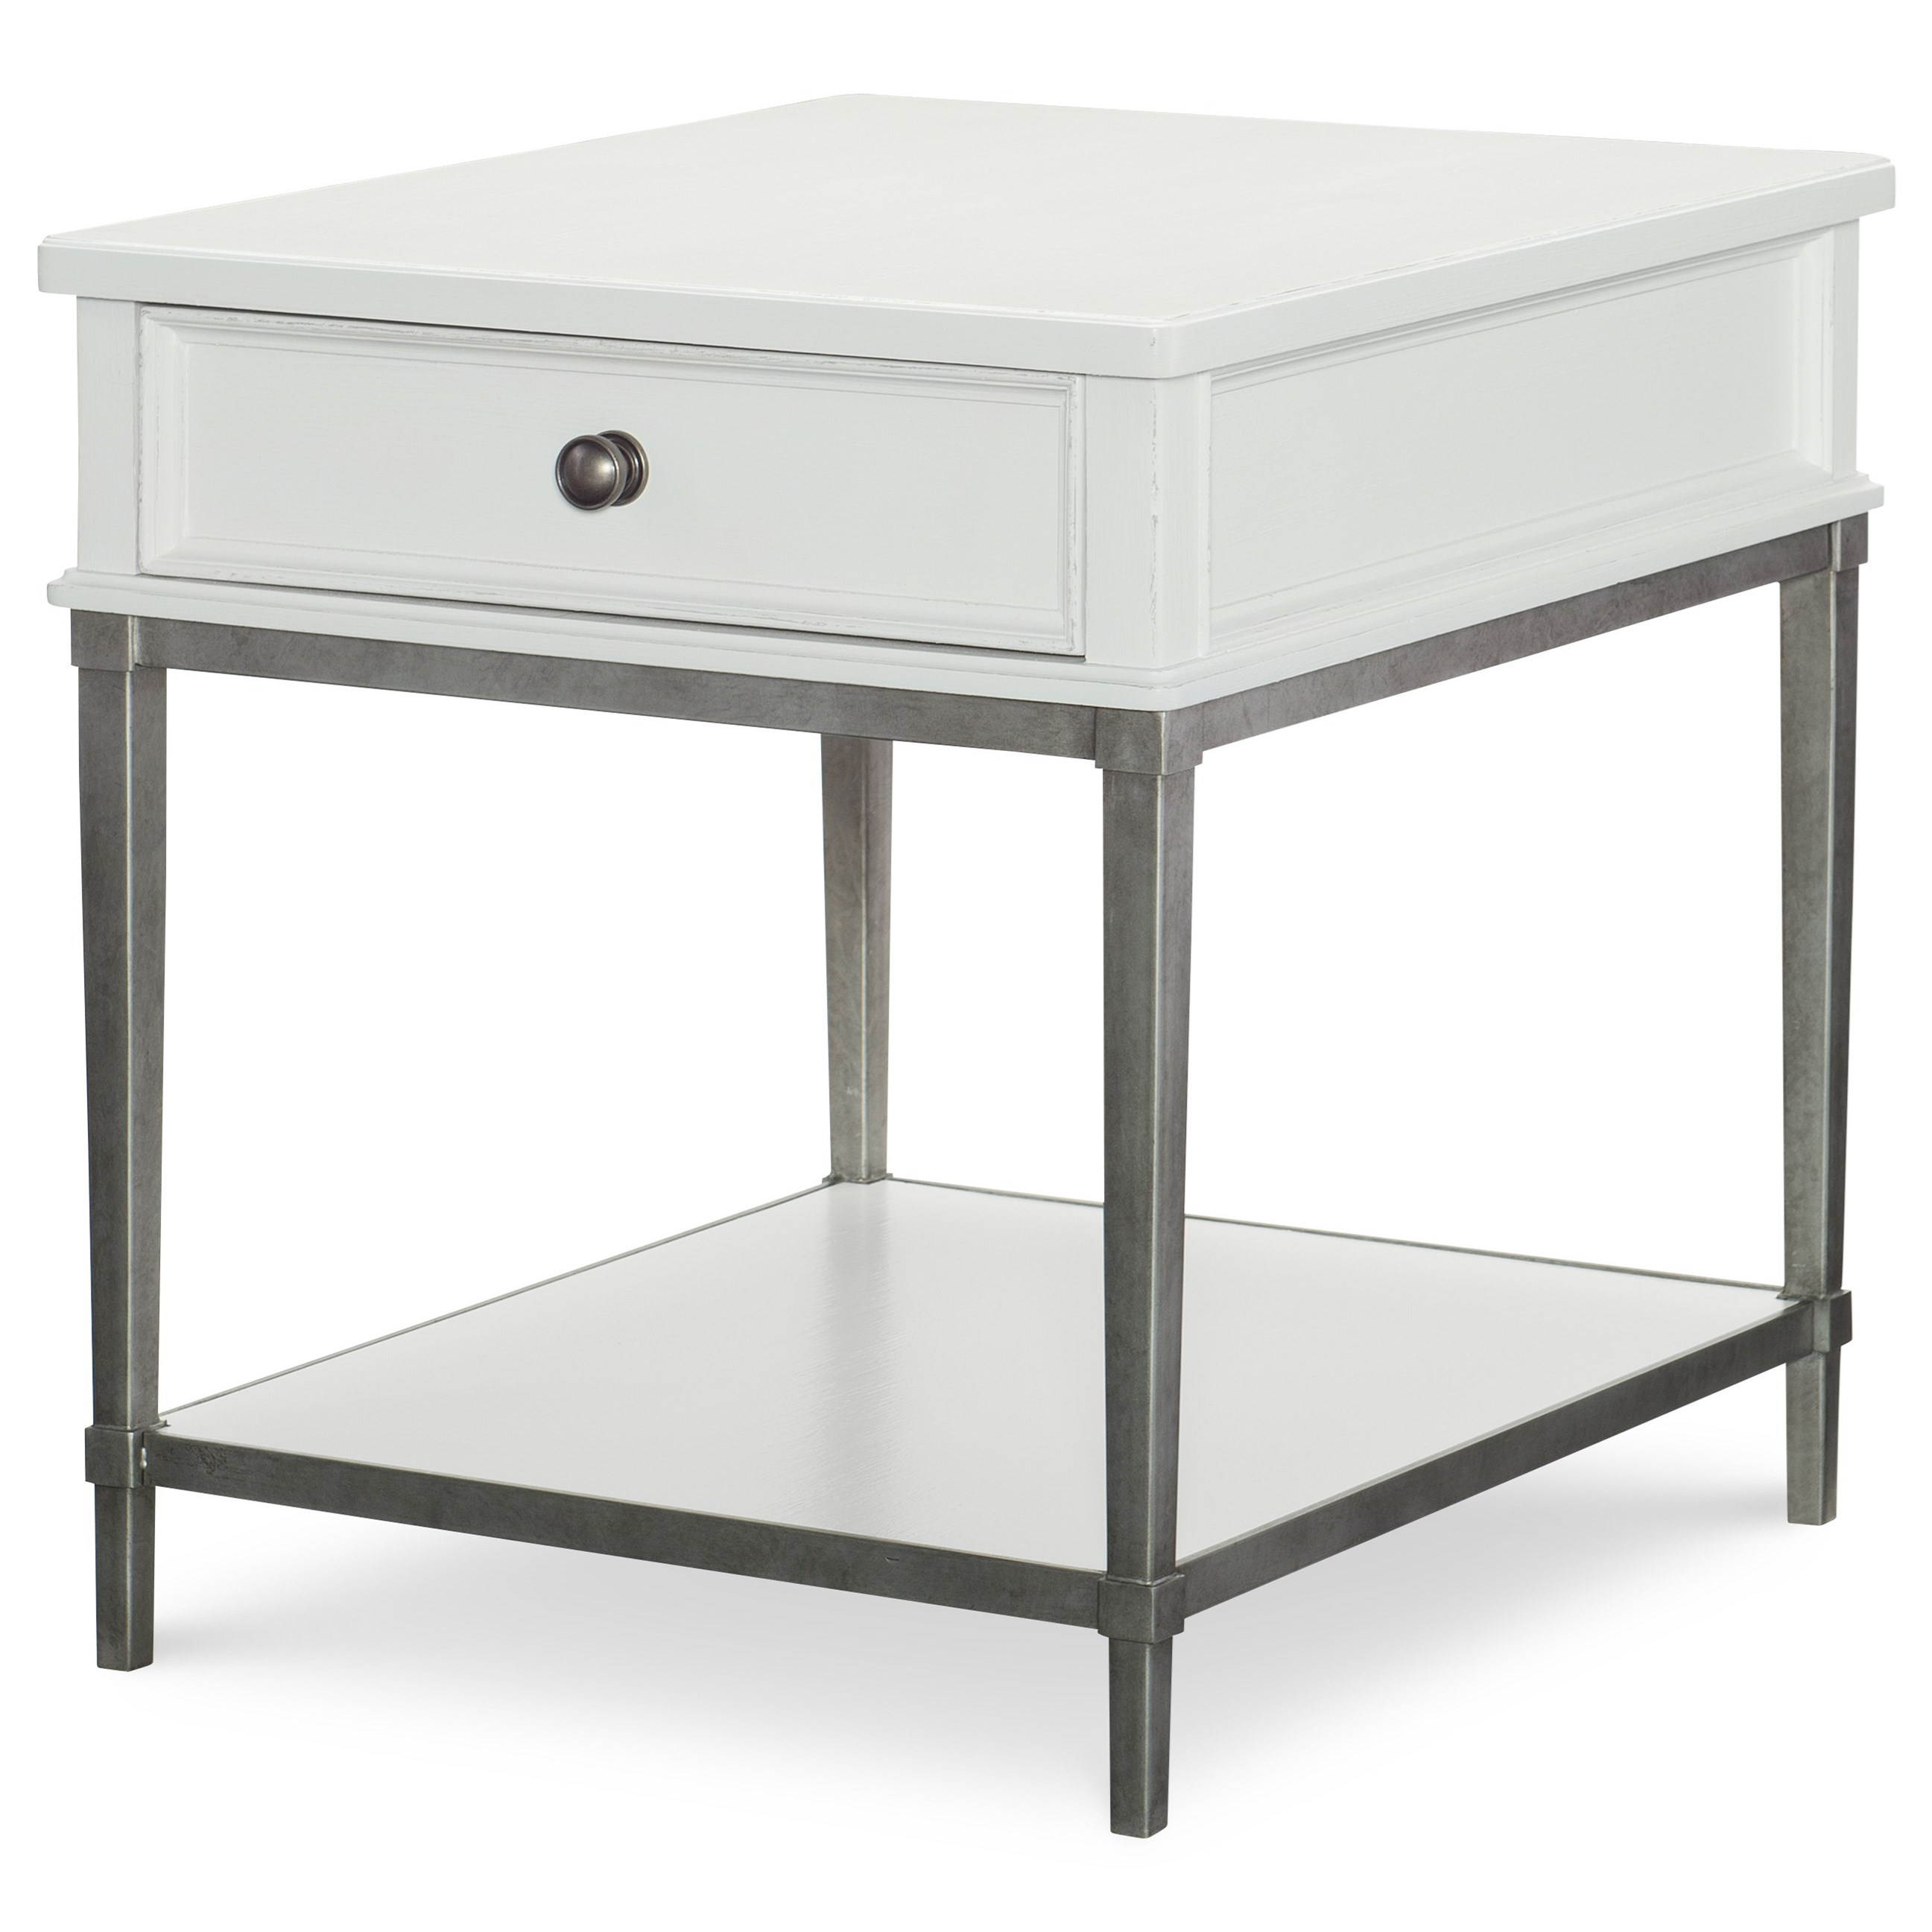 Rachael Ray Home by Legacy Classic Upstate End Table with Metal Base - Item Number: 6041-405